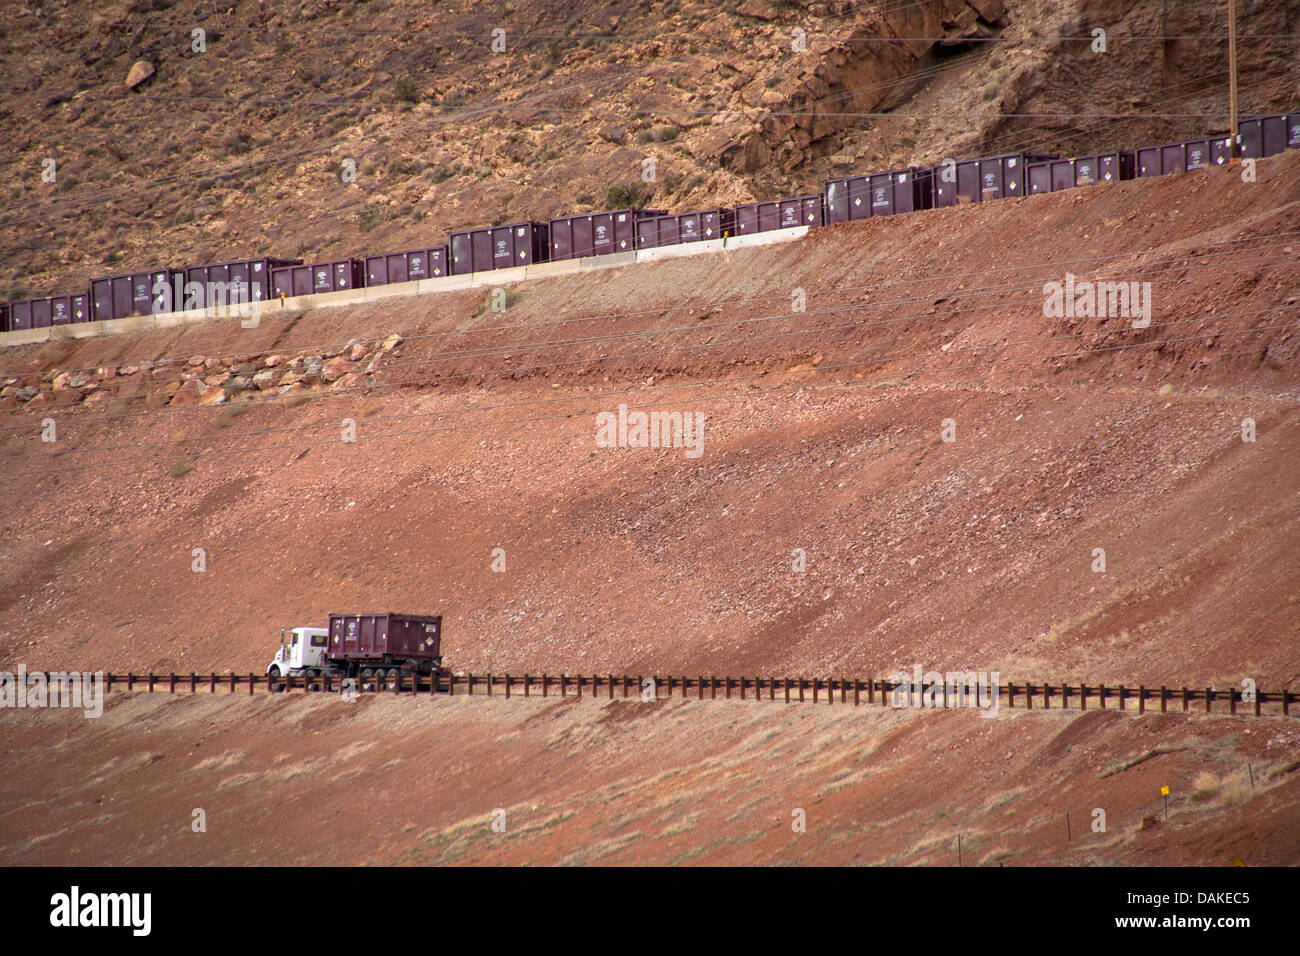 Utah Mines Stock Photos & Utah Mines Stock Images - Alamy